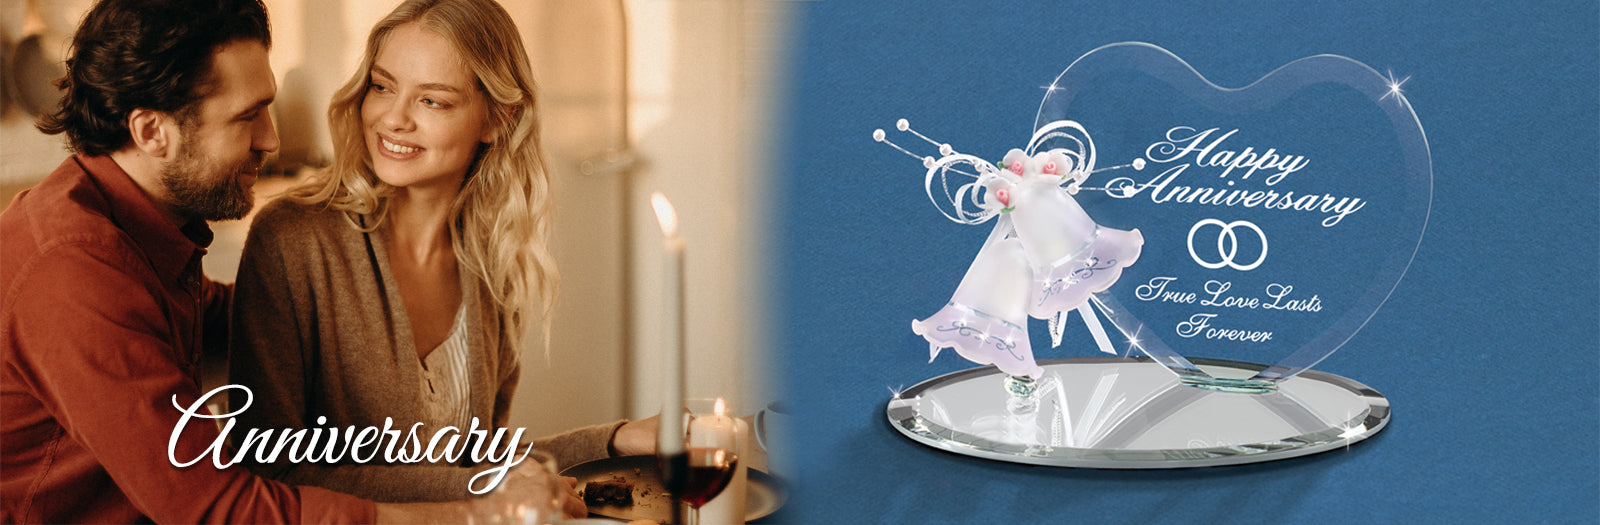 Shop handcrafted glass art Anniversary Figurines to celebrate the years.